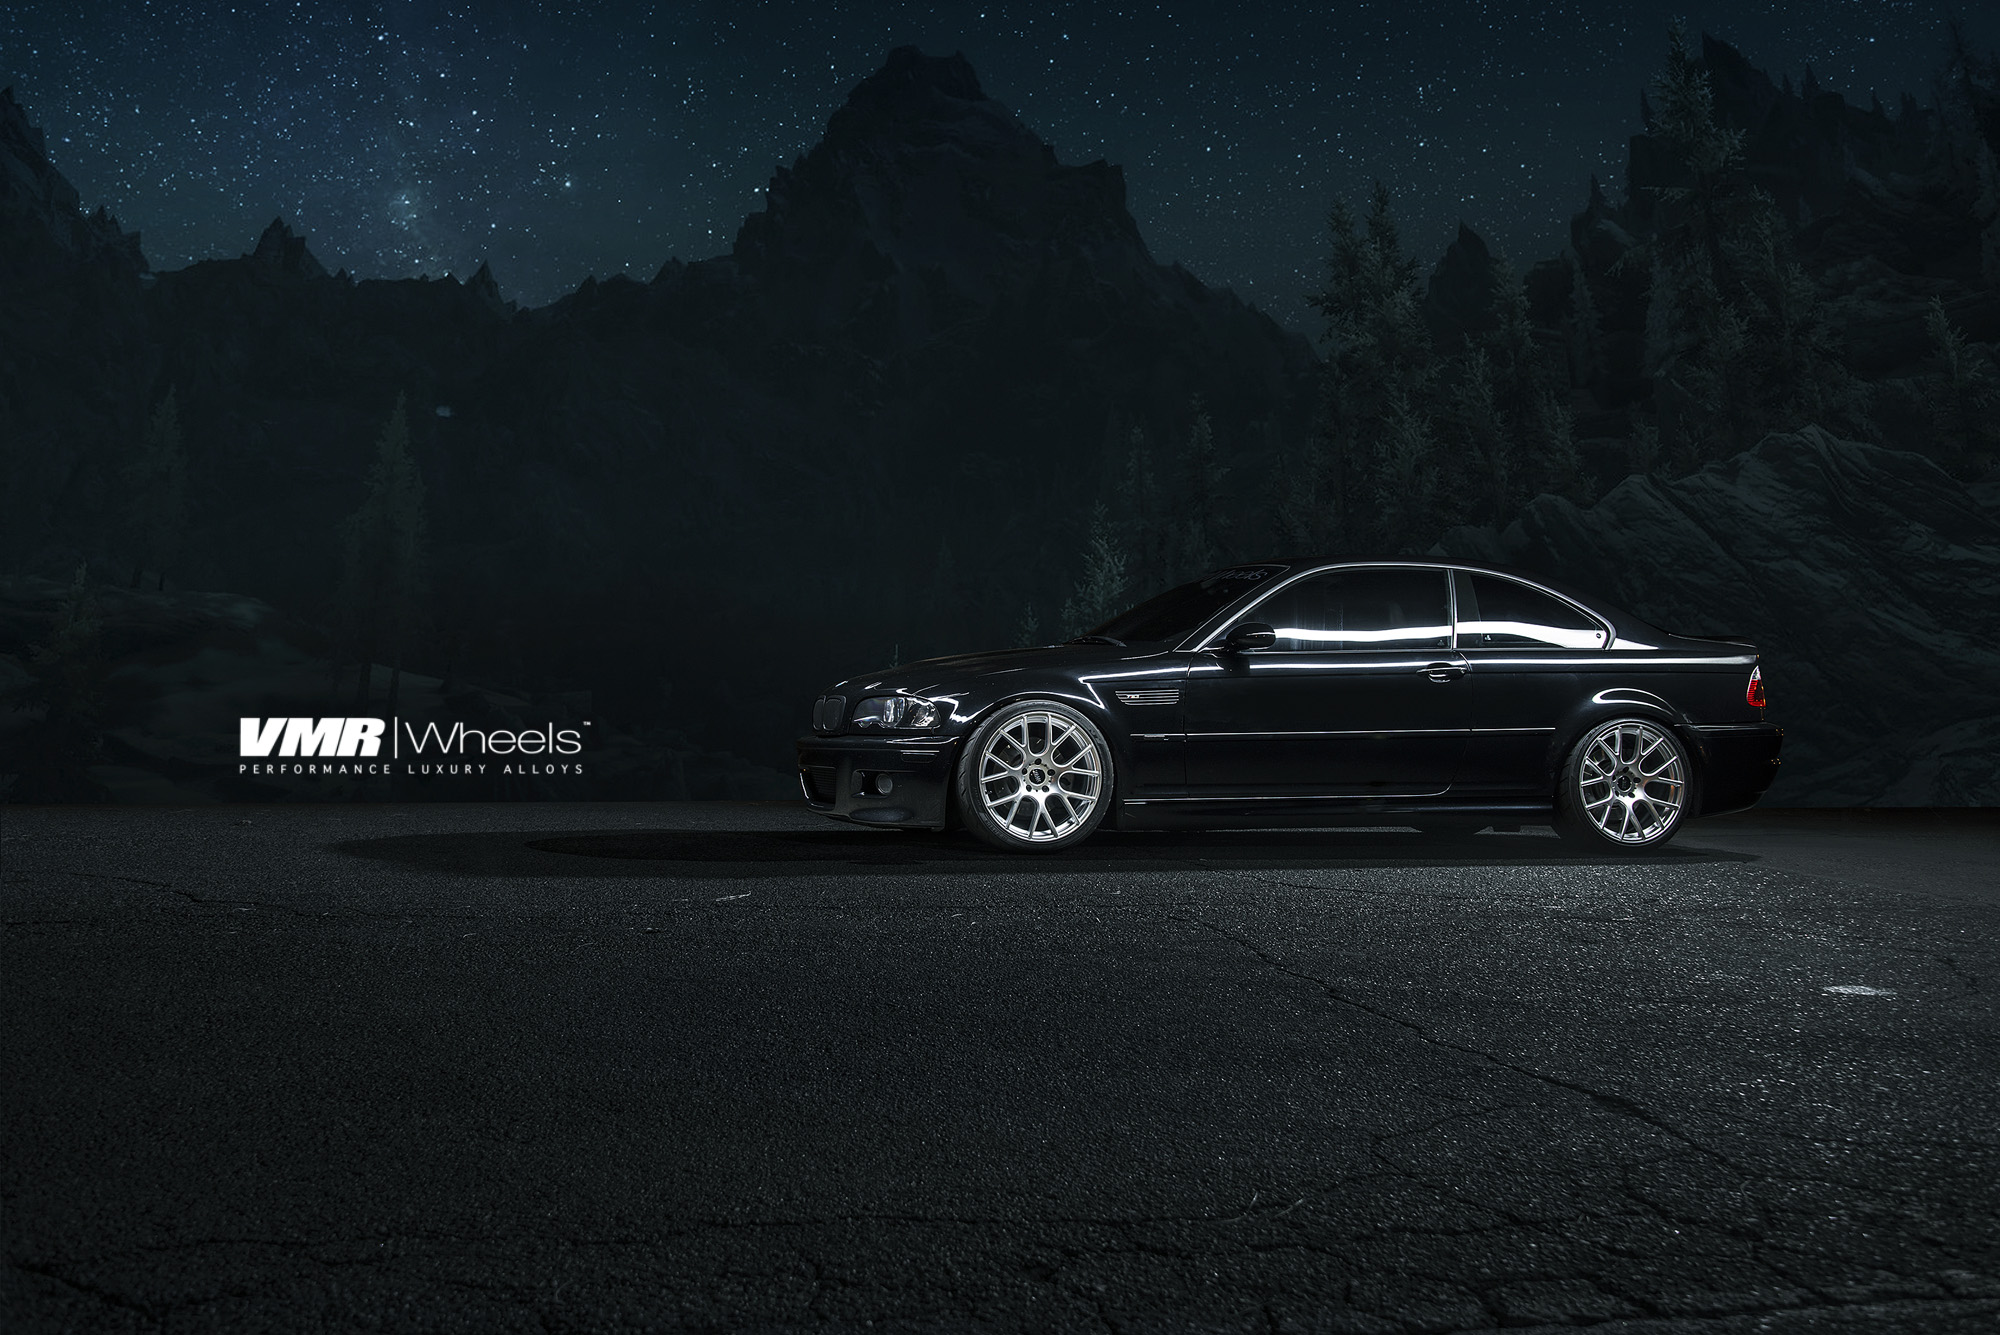 VMR V810 19in Hyper Silver Wheels on BMW E46 M3